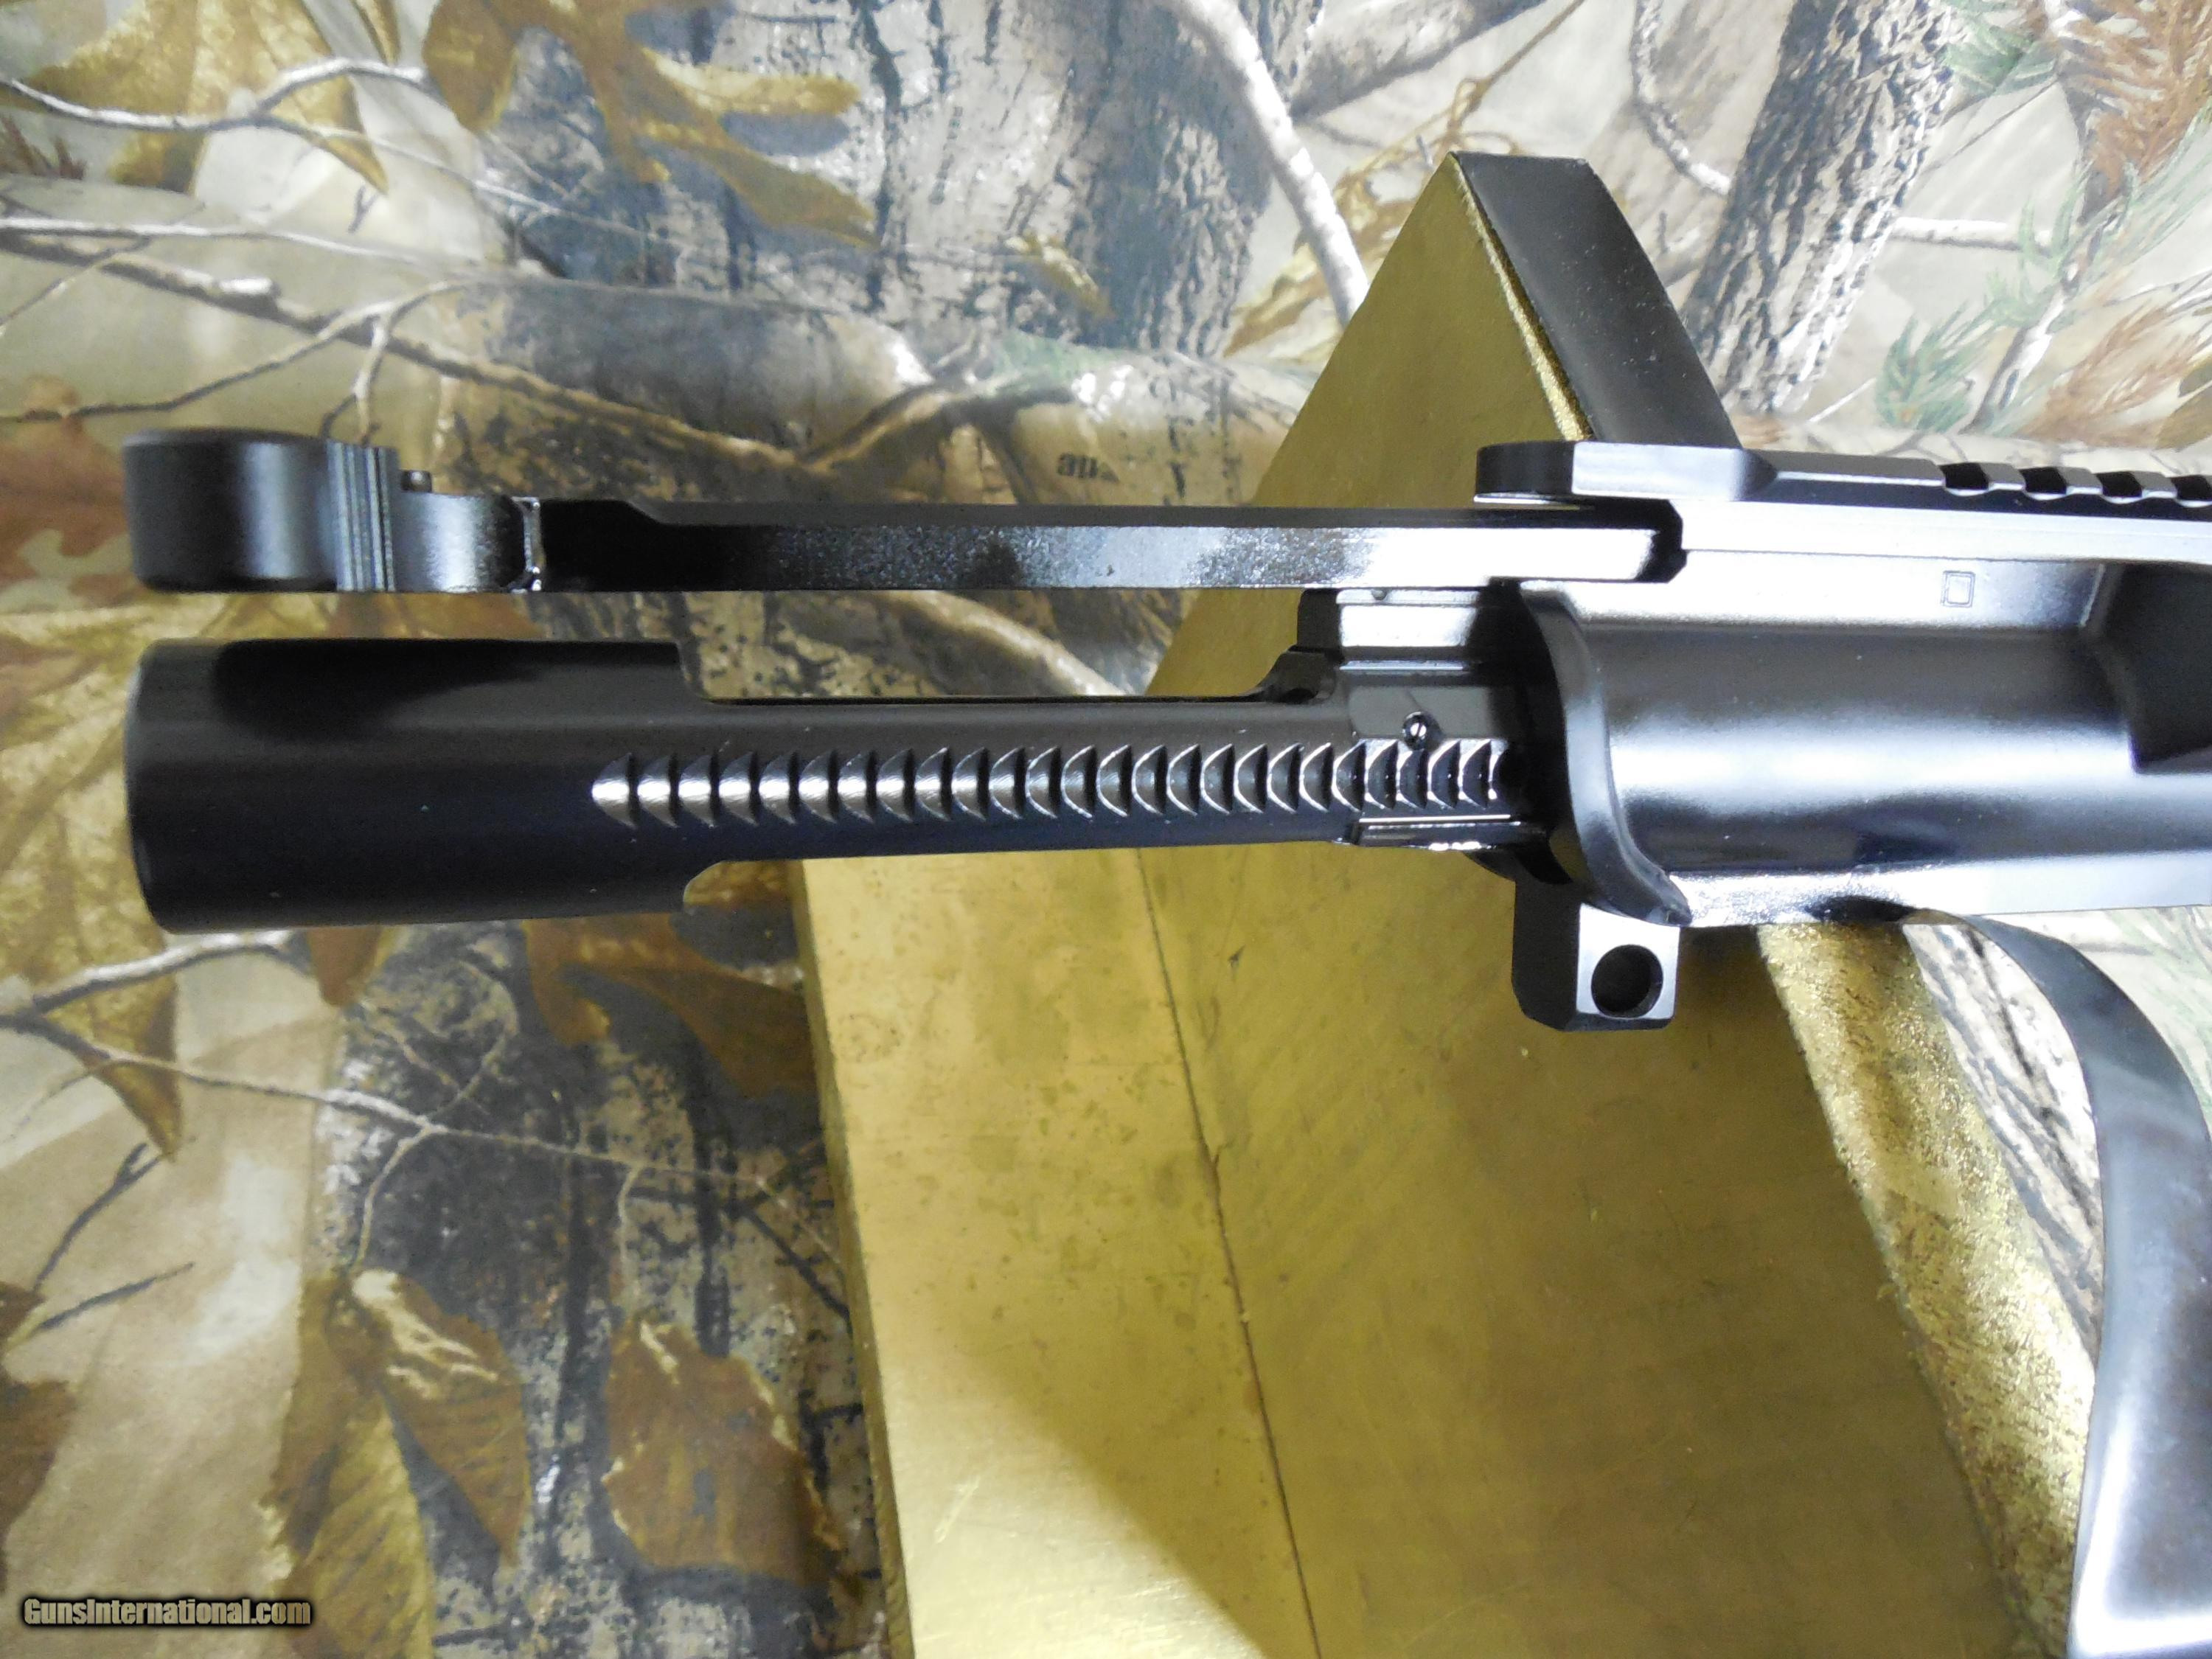 AR-15, UPPER YOURS, COMPLETE UPPER, 223 Wylde, STANLESS STEEL 16